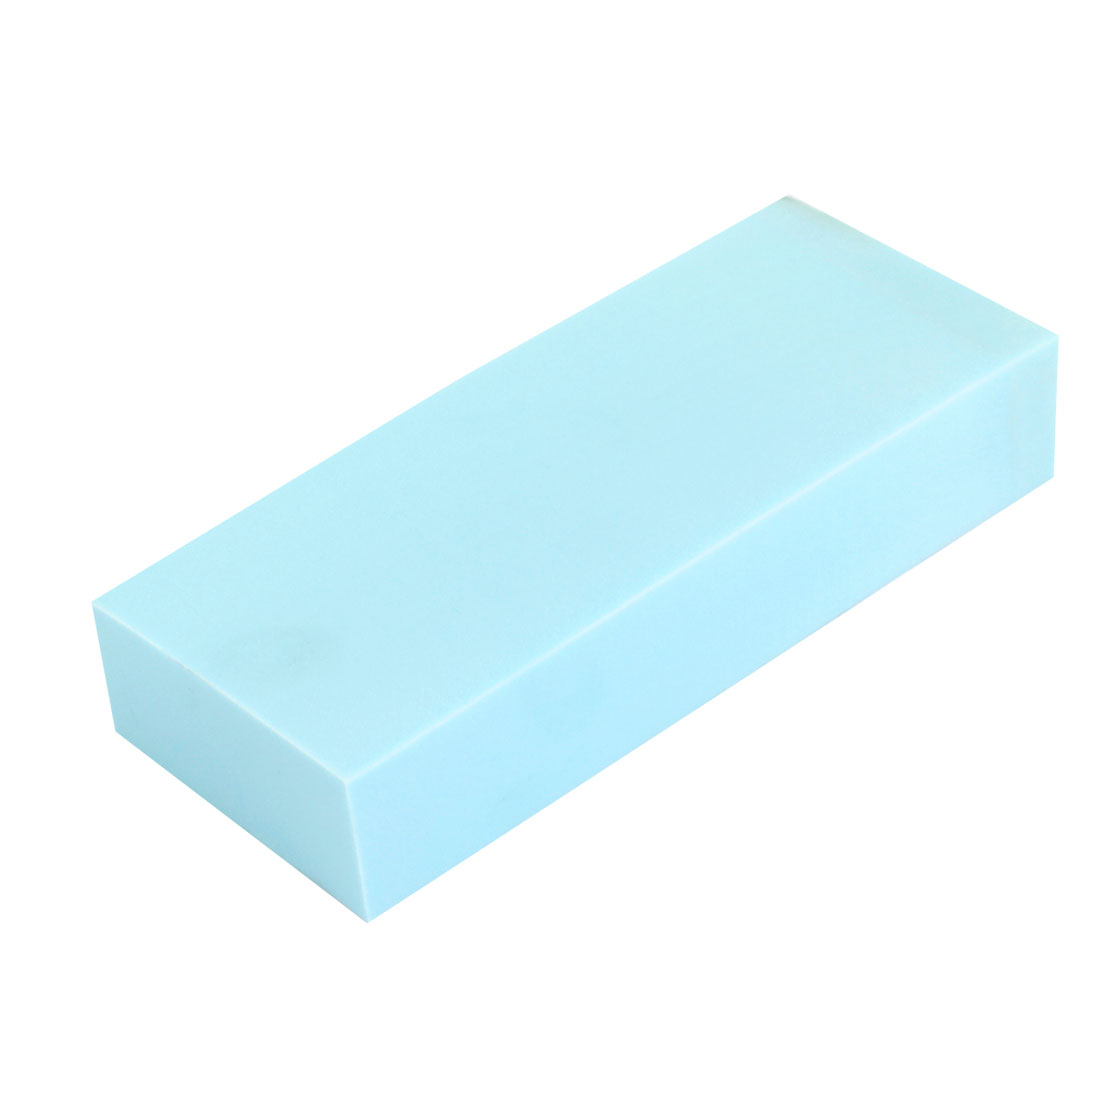 Auto Car Baby Blue PVA Sponge Block Pad Washing Cleaning Tool 18cmx7.5cmx3.5cm